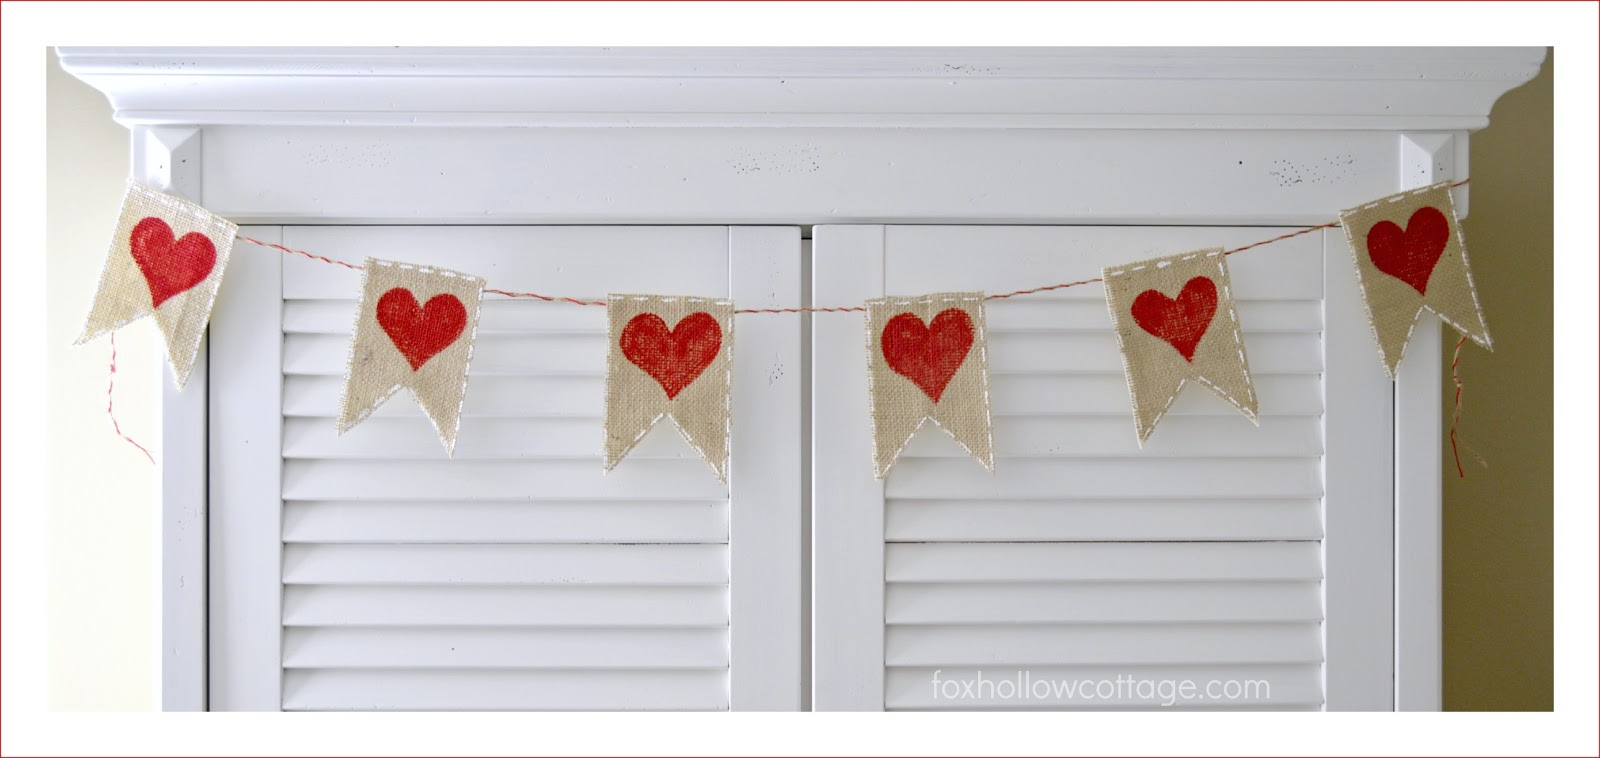 Do It Yourself Home Design: 15 Do-it-Yourself Valentine's Day Banners